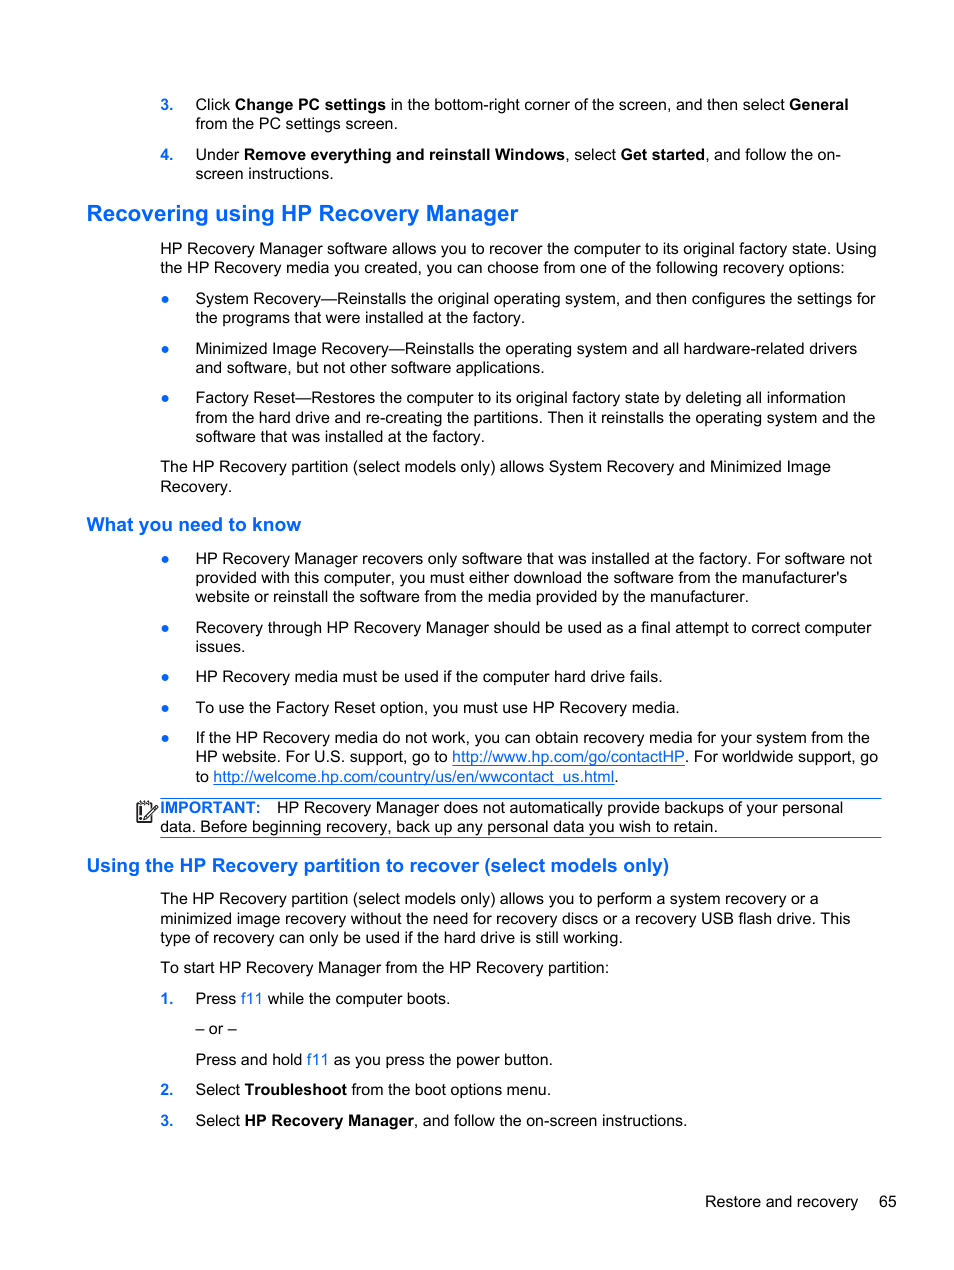 Recovering using hp recovery manager, What you need to know, Ion